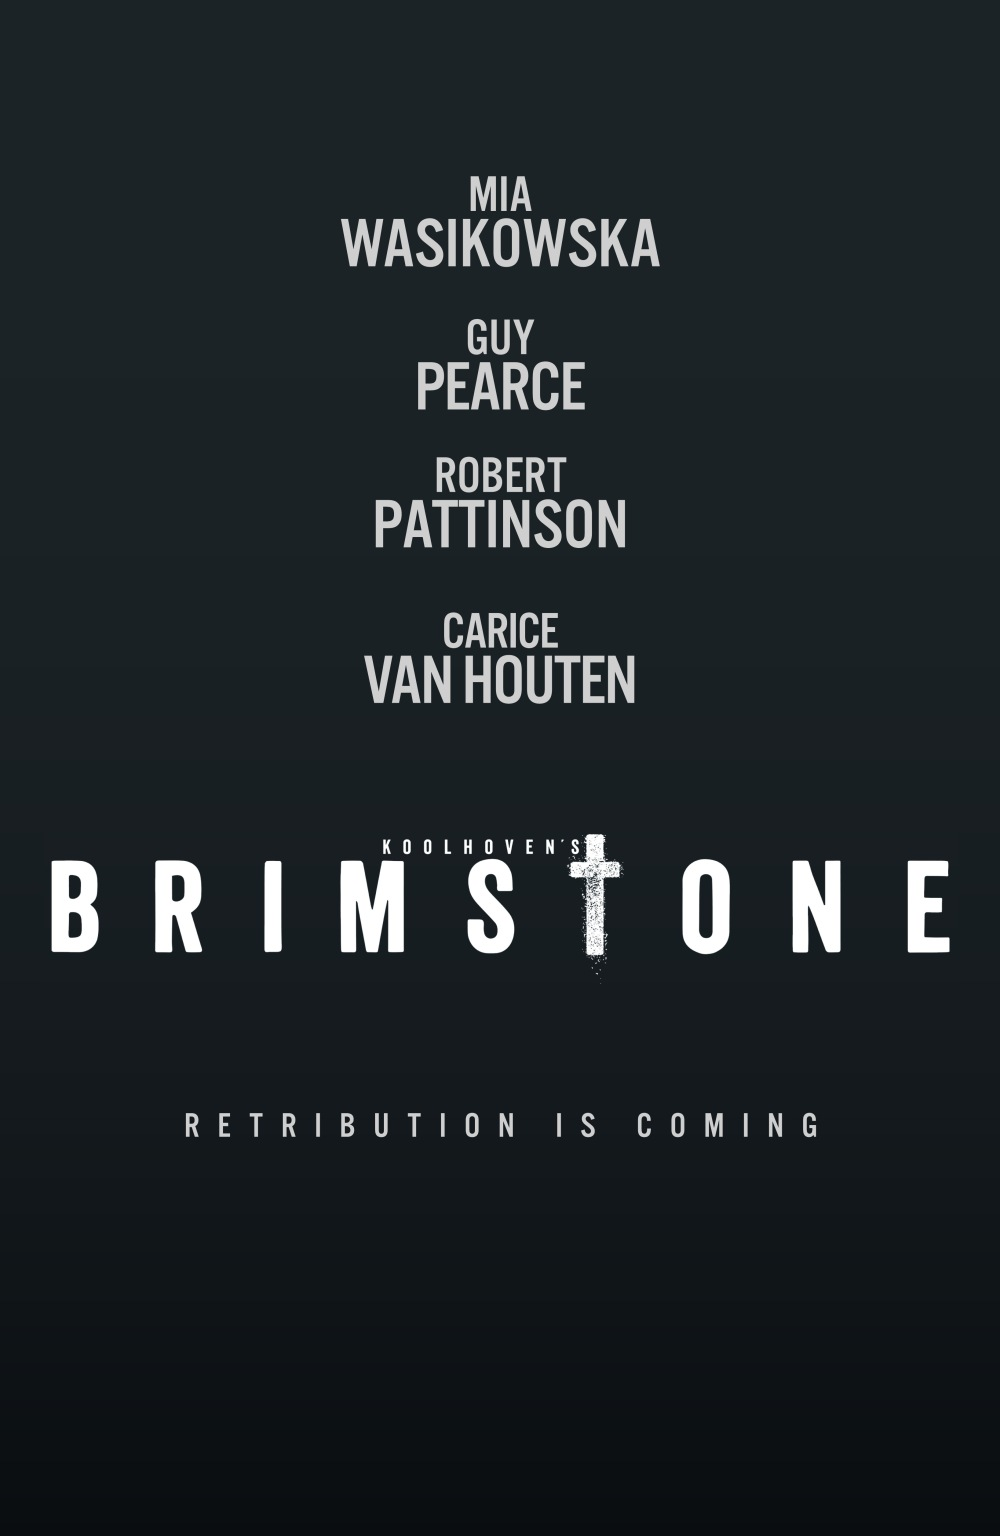 CANNES_BRIMSTONE_BANNER_1800X1180_P4P-copy